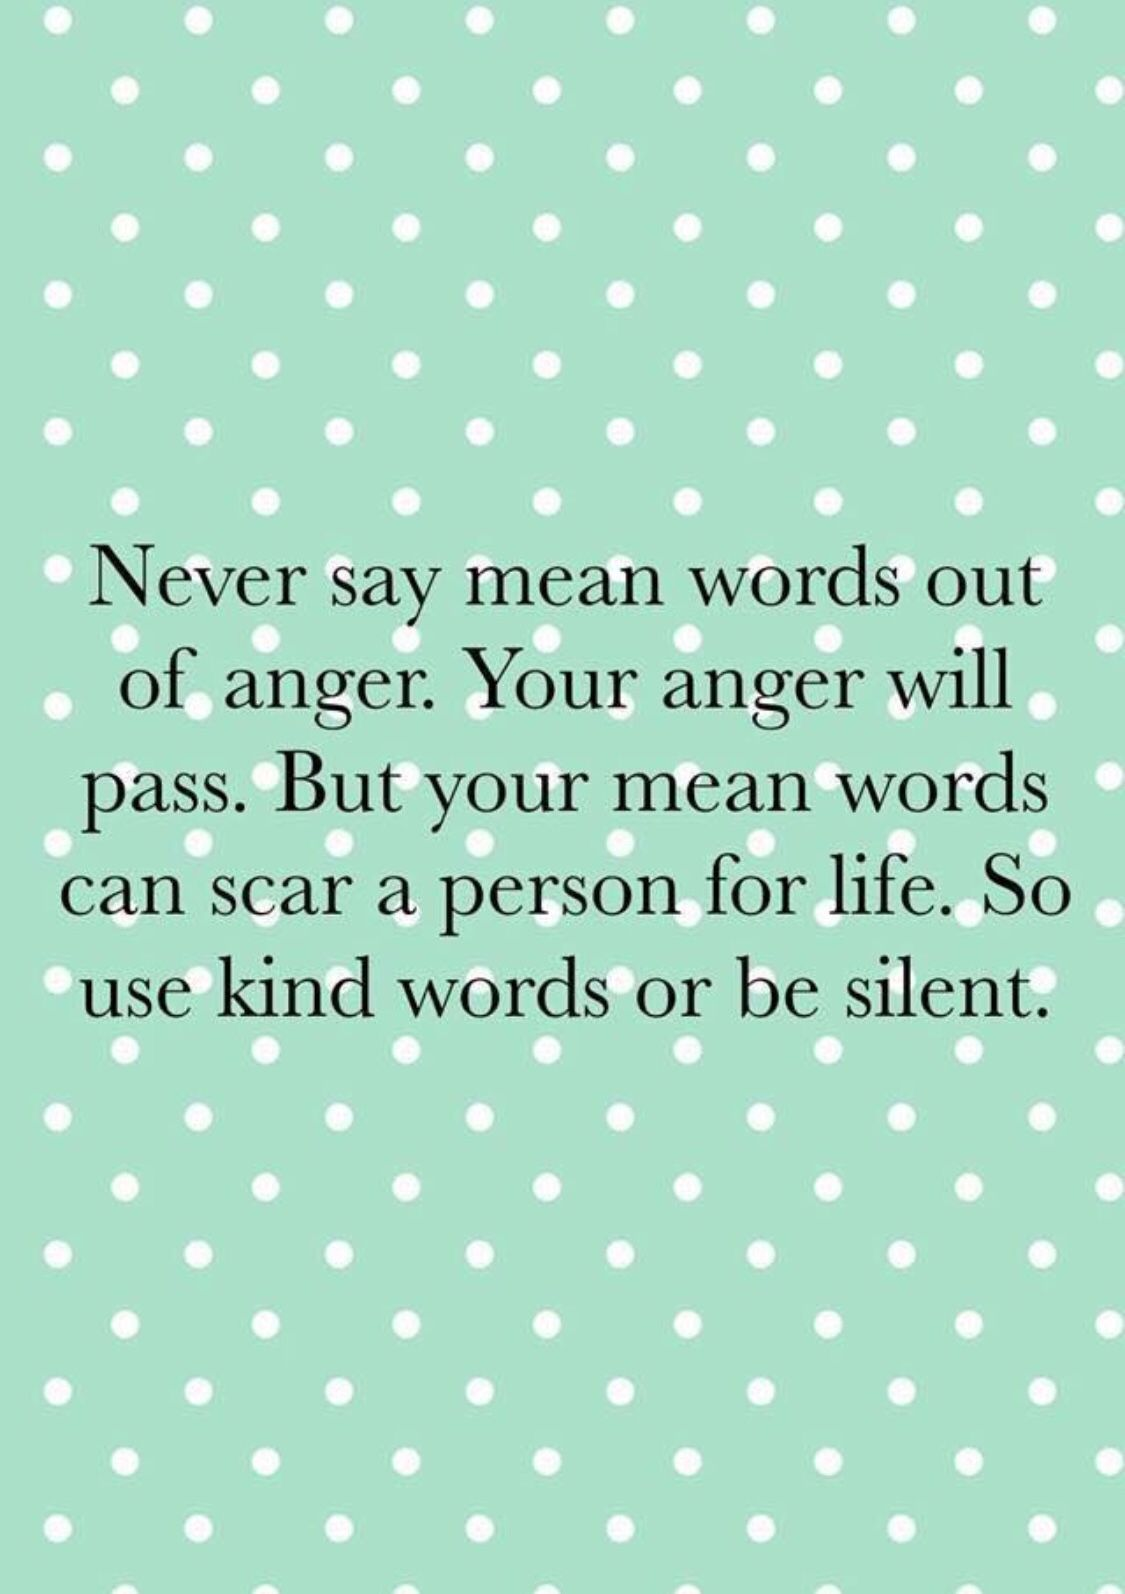 Christian life. Christian living. Never say mean words out ...